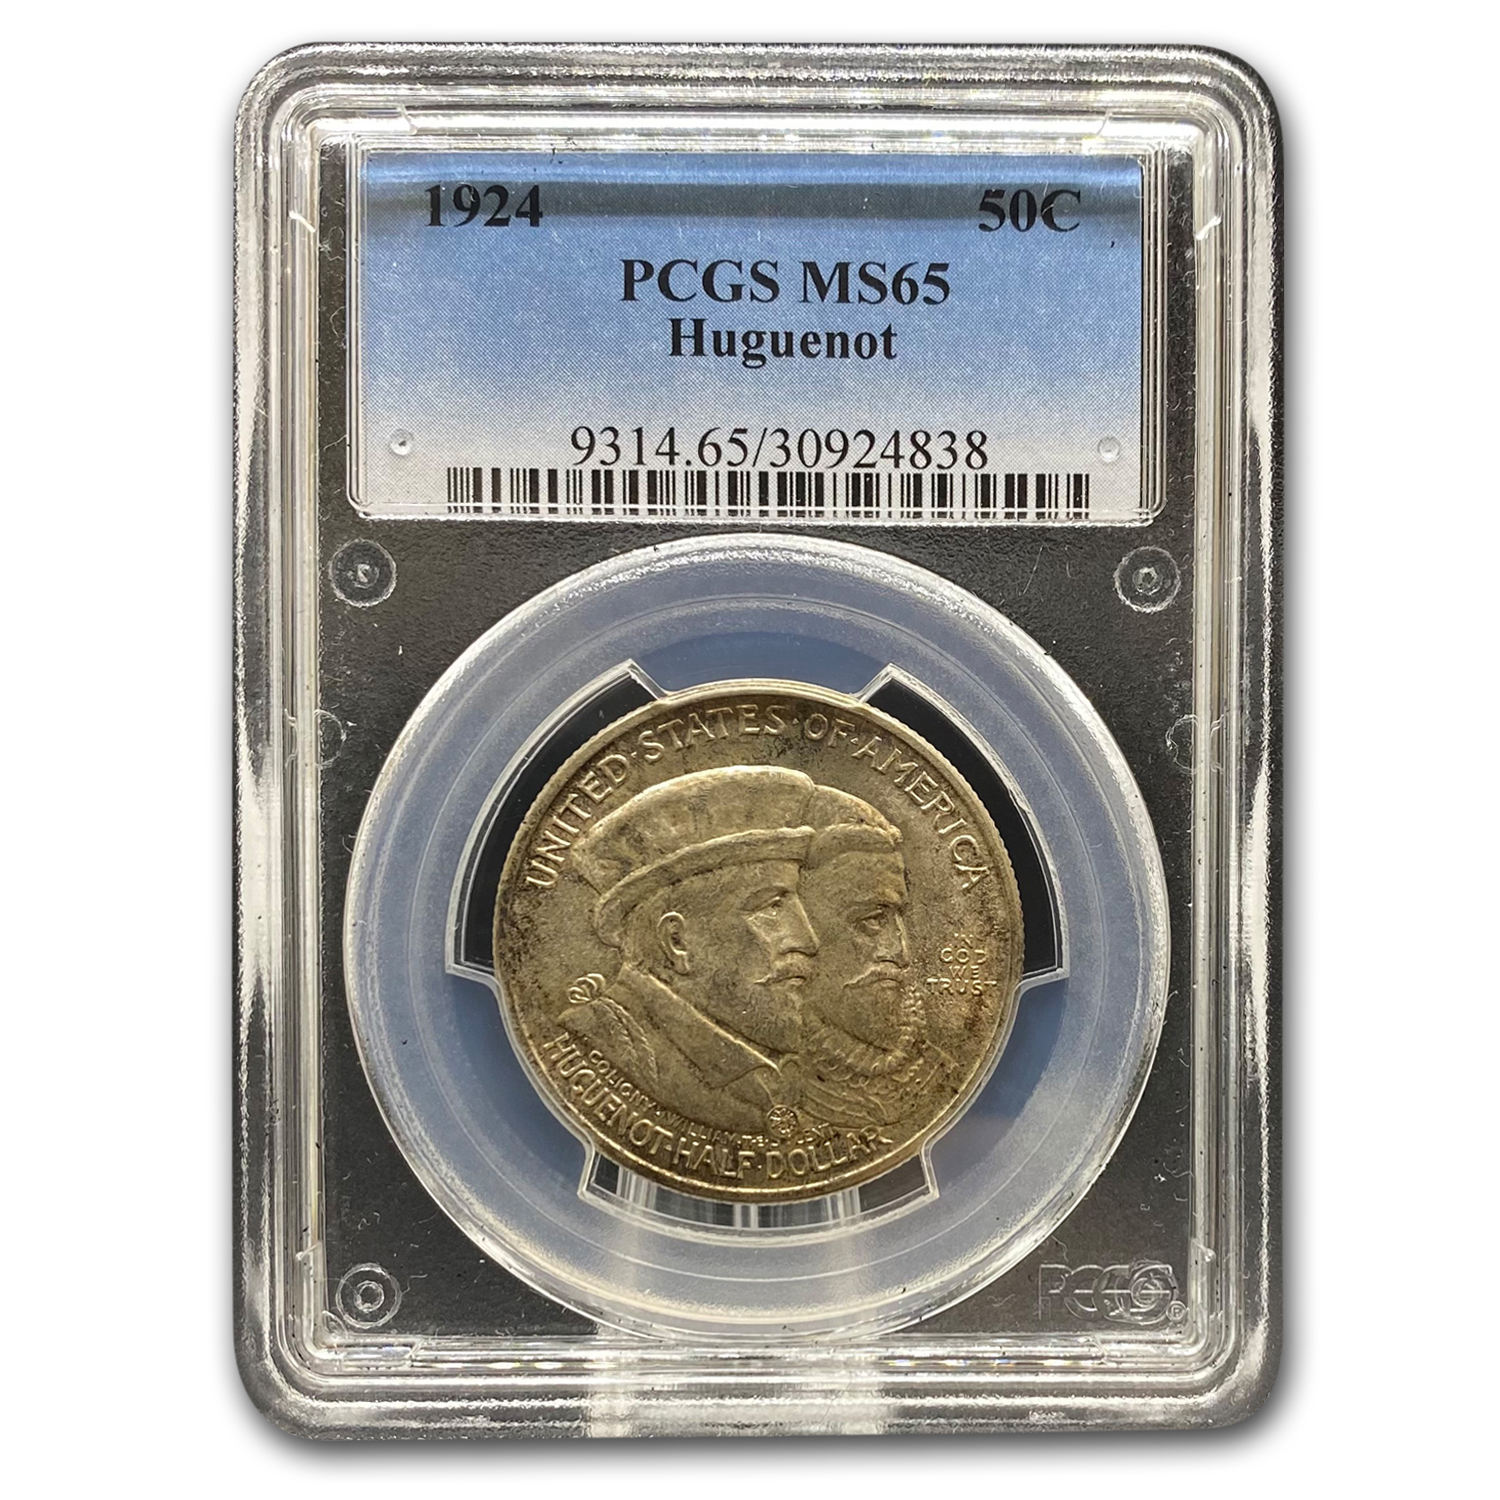 1924 Huguenot Commem Half Dollar MS-65 PCGS